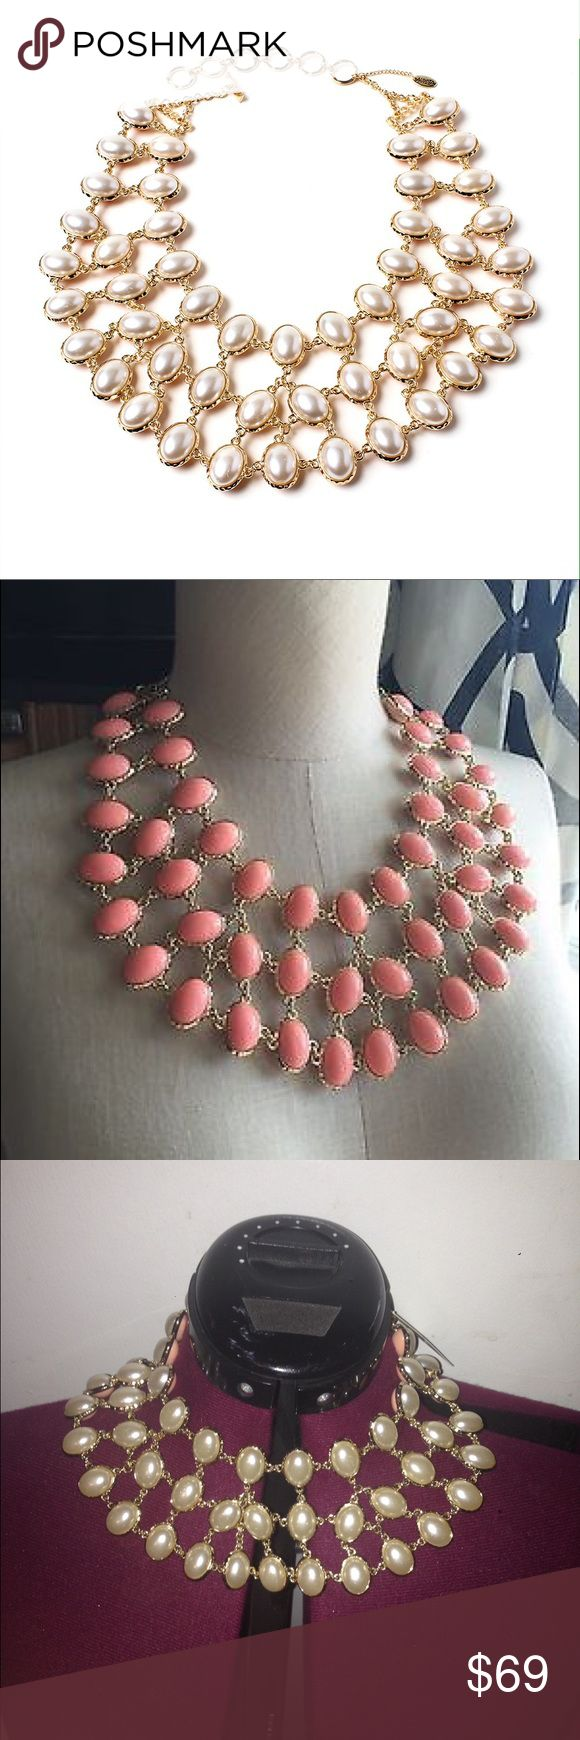 Amrita Singh pearl reversible necklace NWT new Stunning Amrita Singh reversible pearl peach necklace.  New in package Amrita Singh Jewelry Necklaces